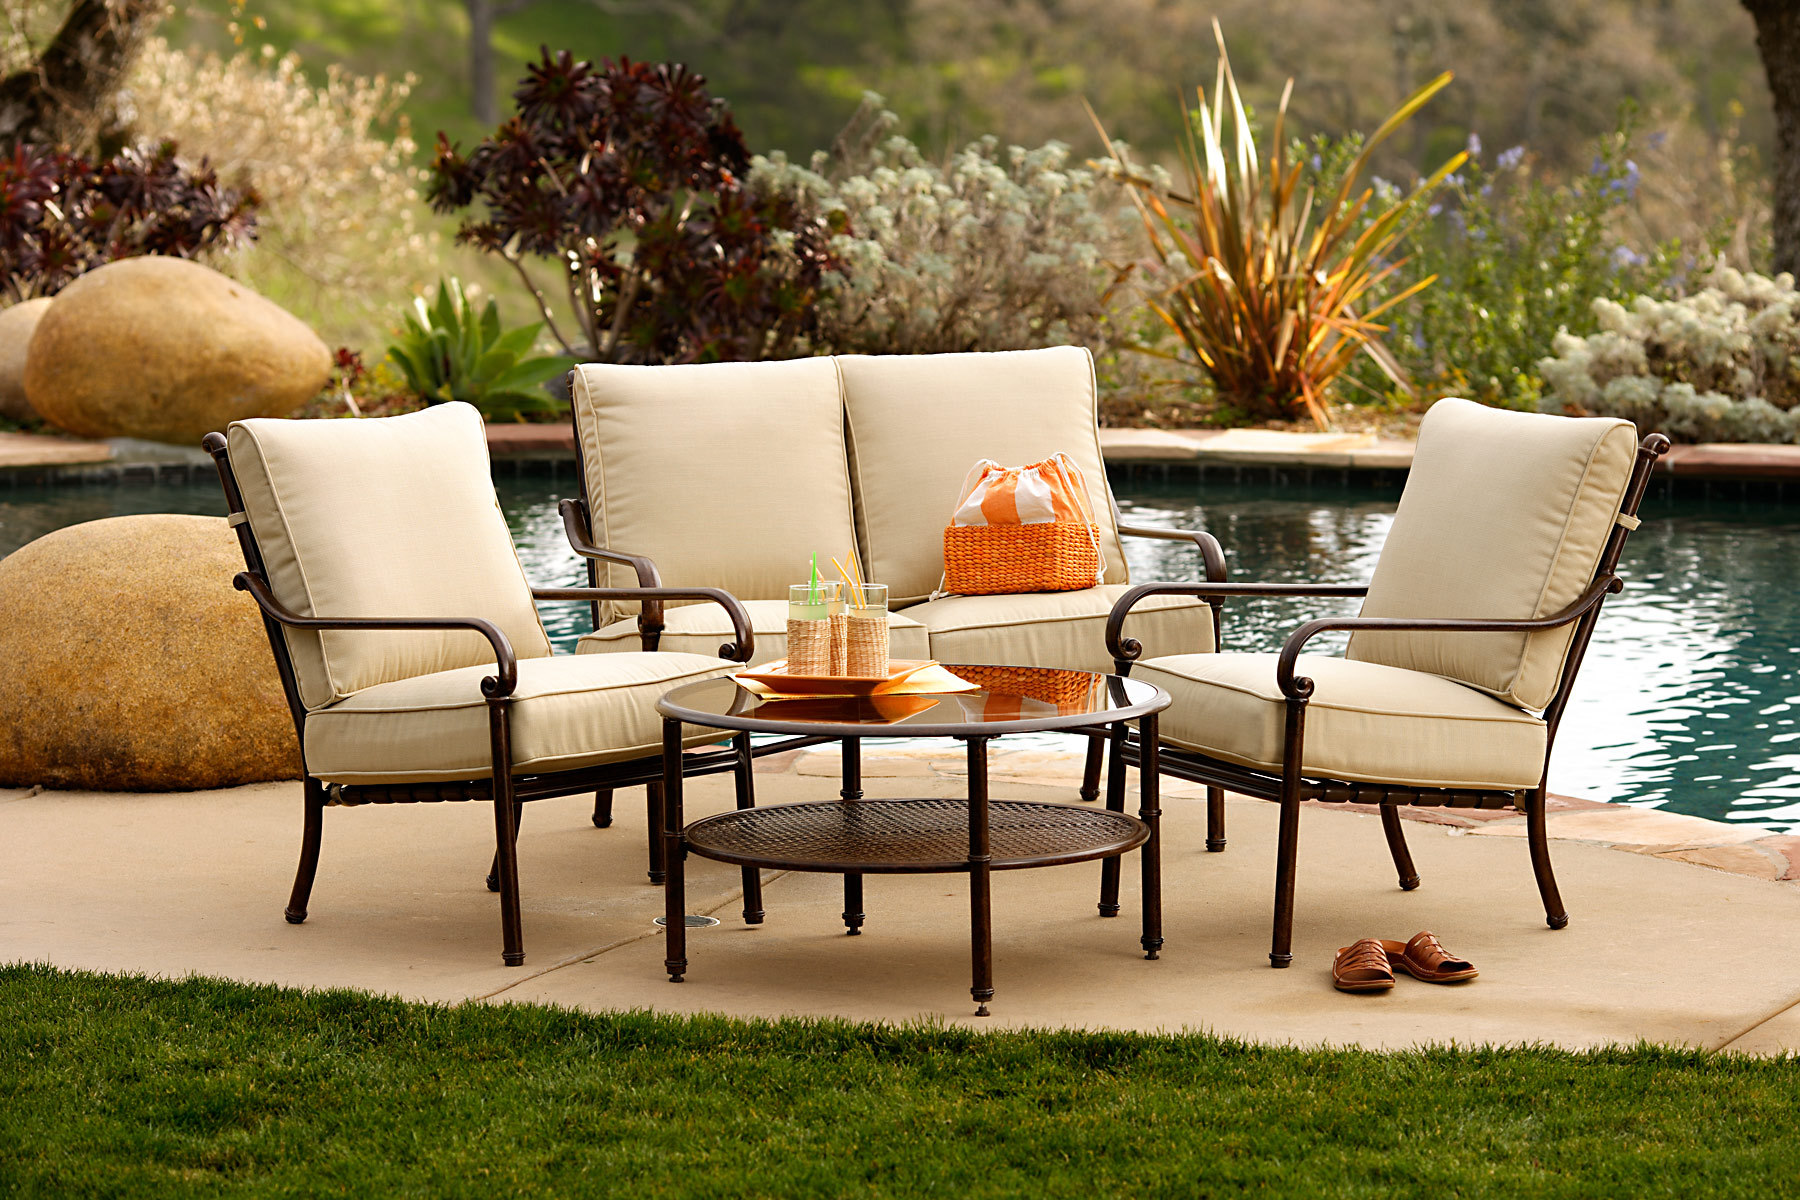 Garden Furniture Sets unique small patio furniture sets | eva furniture